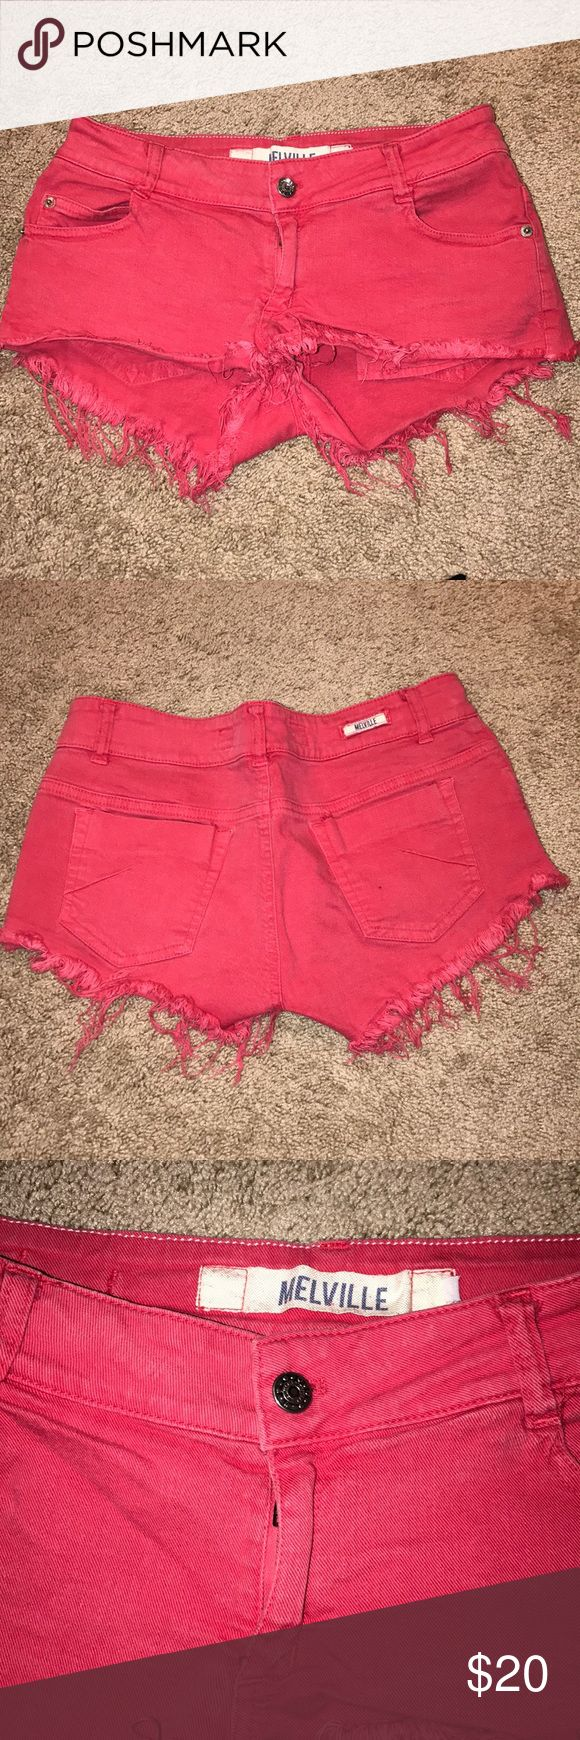 Brandy Melville pink shorts Hot pink Brandy Melville shorts. Jagged bottom. Cheeky. Bought in Europe so tag says size 40. This is equivalent to a size 3-5 in US. Brandy Melville Shorts Jean Shorts